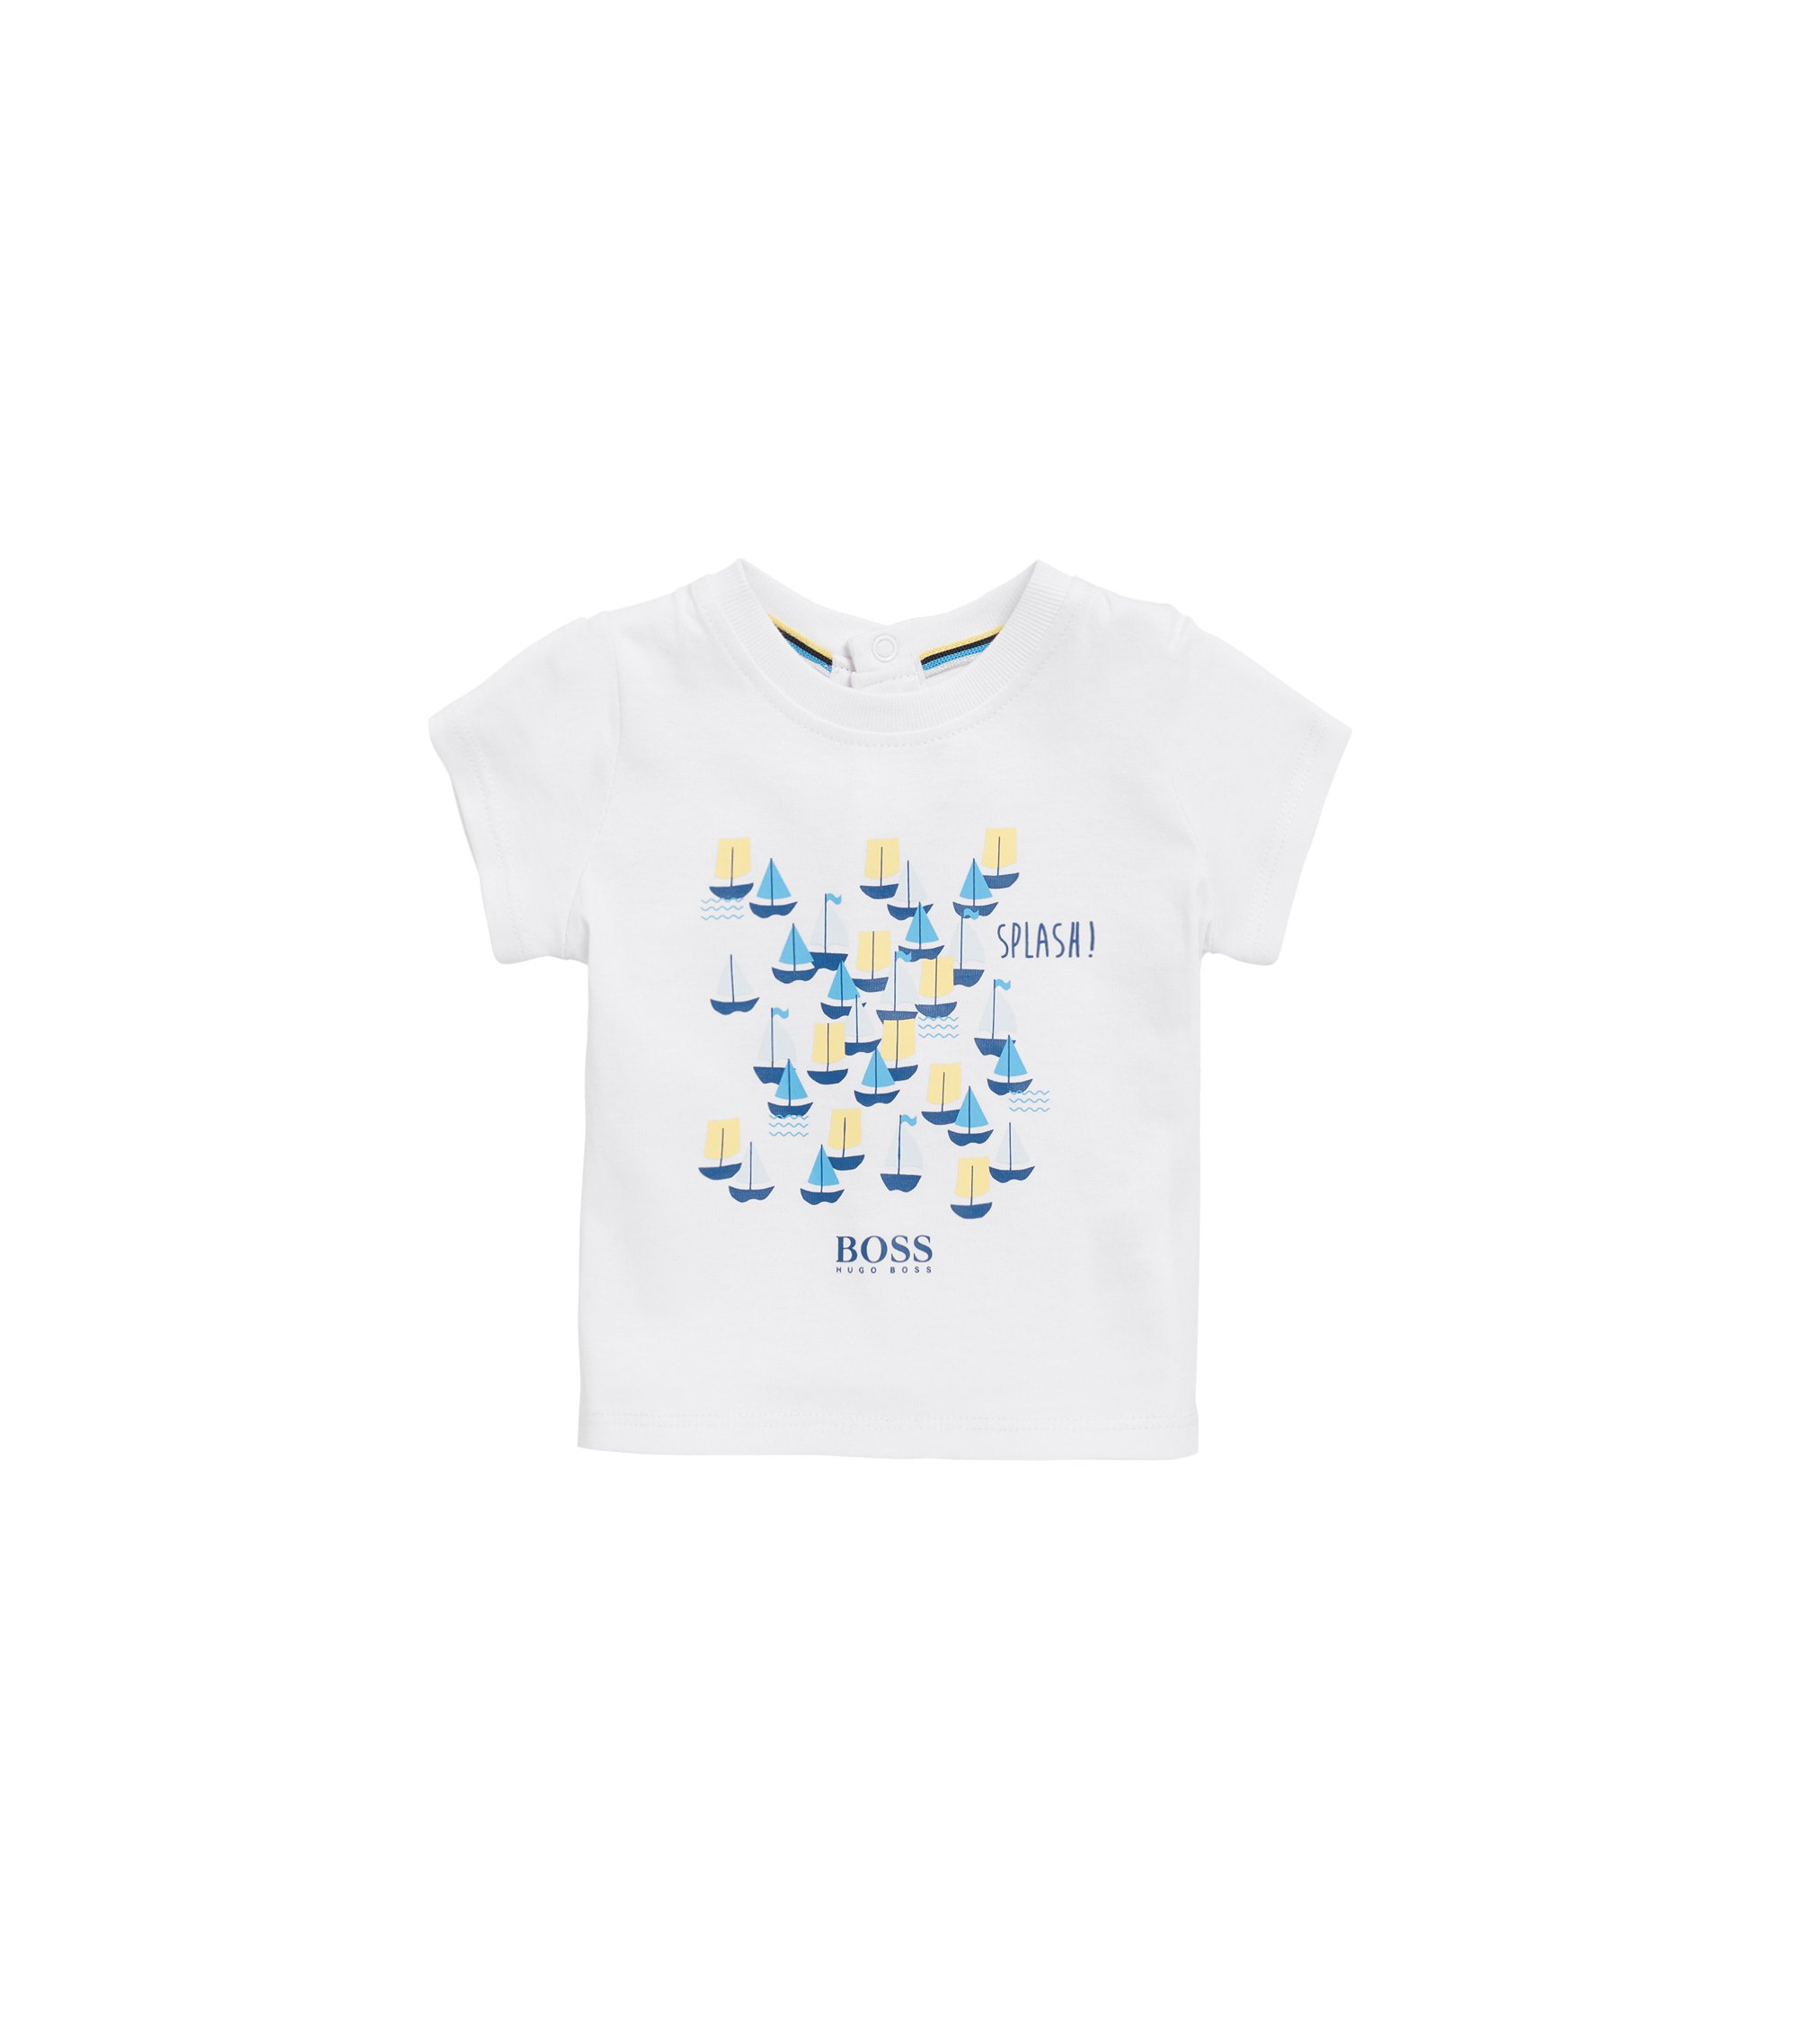 Baby T-shirt in printed cotton jersey, White